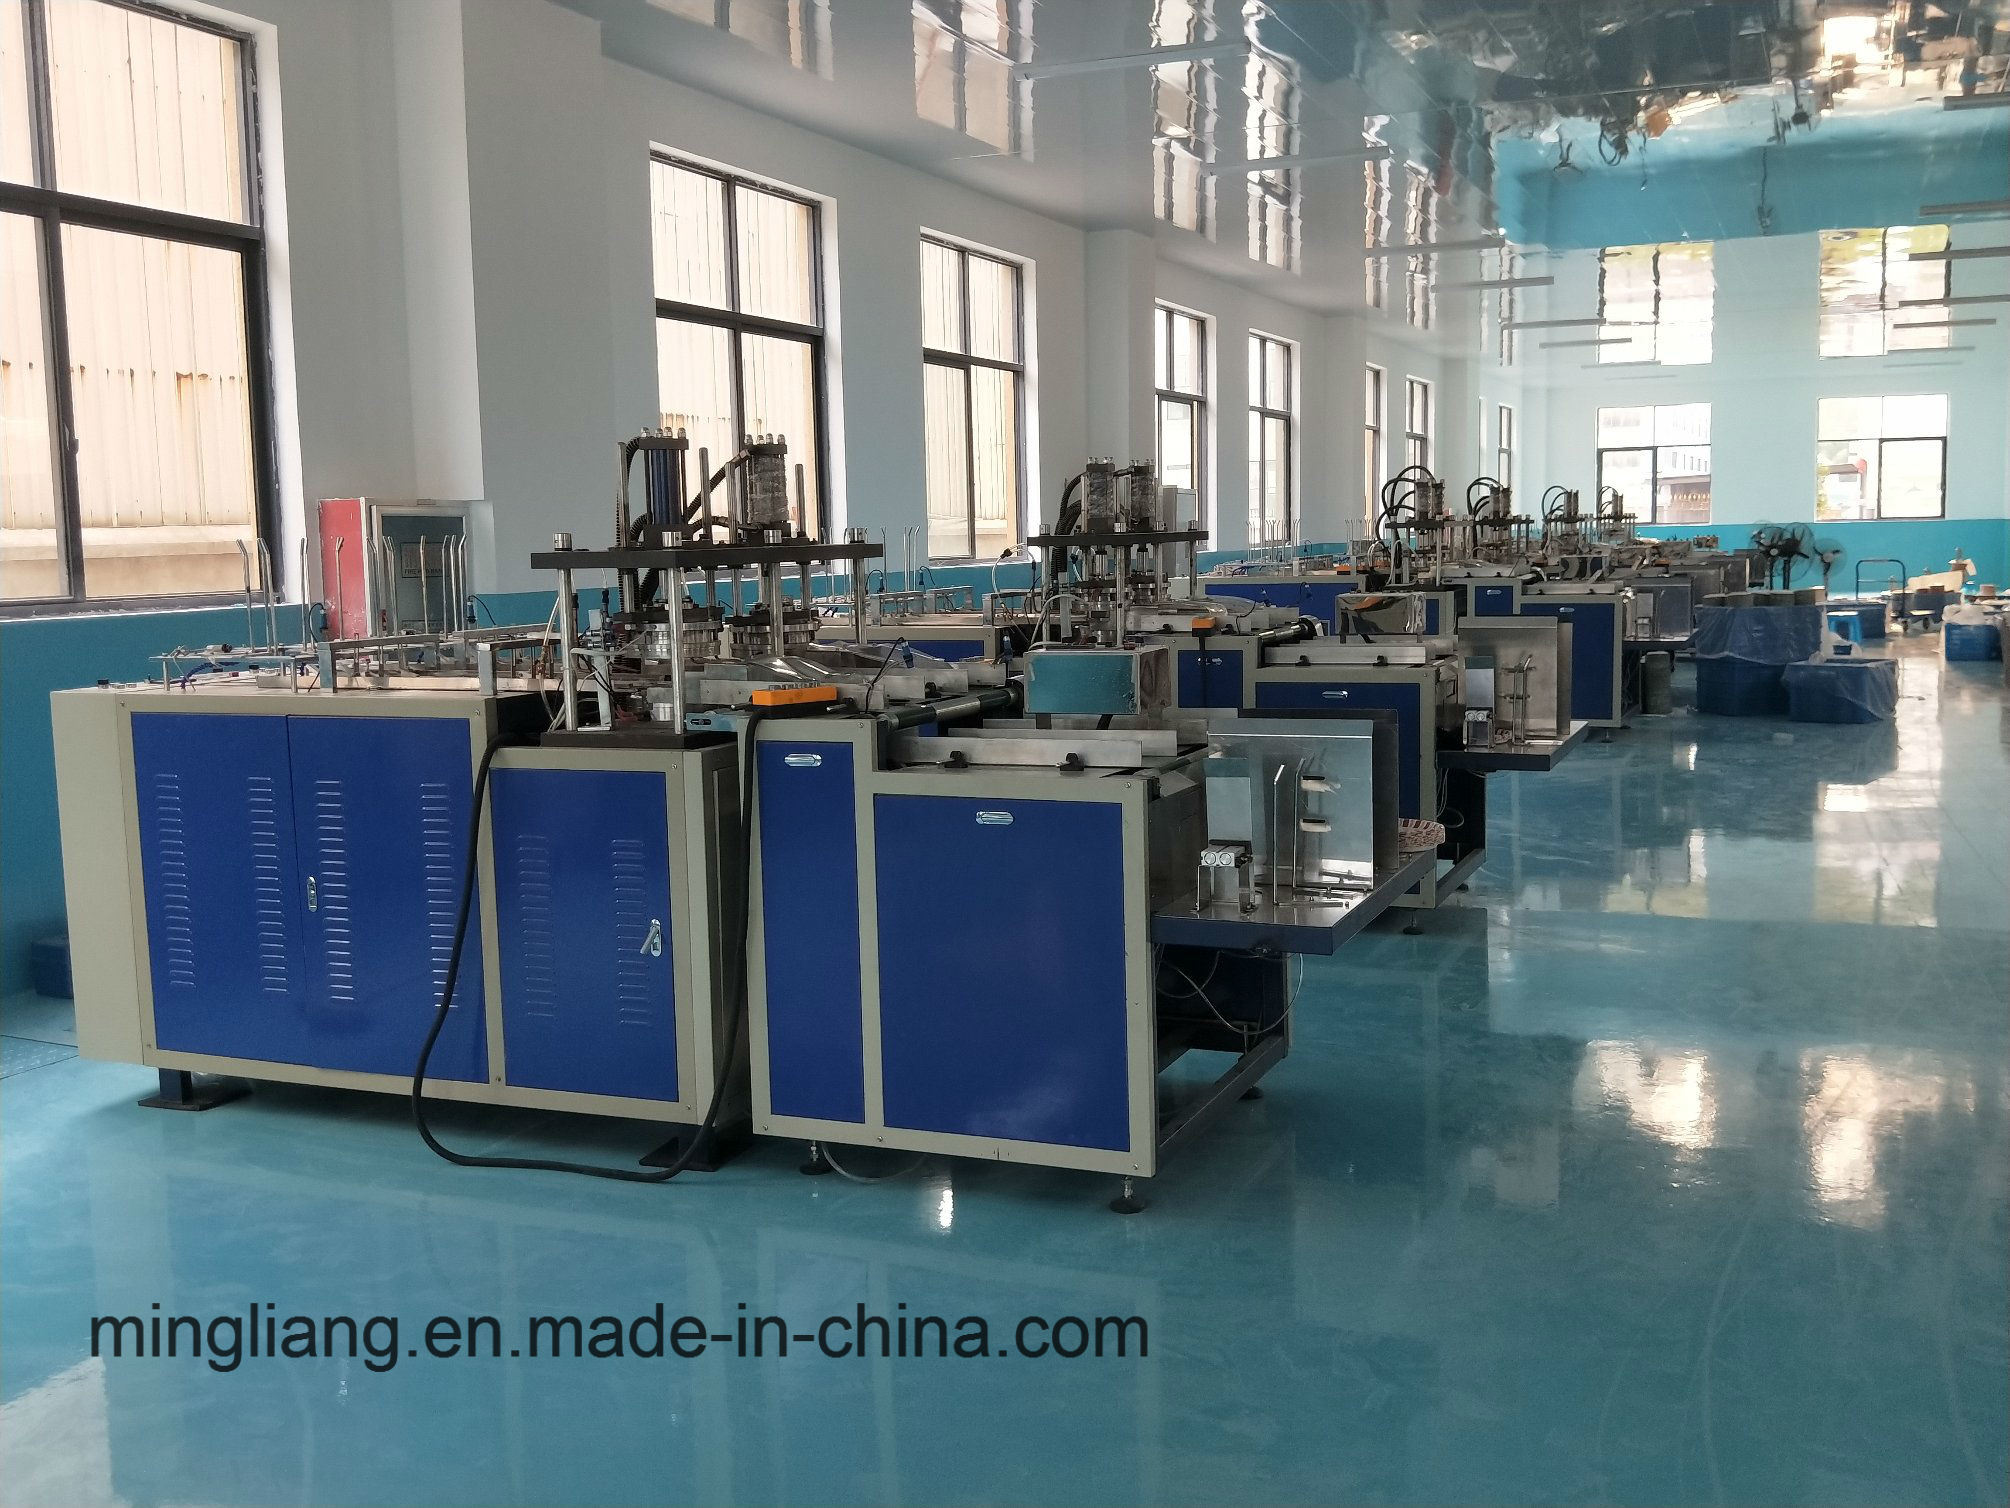 China Ml600y Automatic Hydraulic Paper Plate Making Machine - China Paper Plate Machine Paper Making Machine & China Ml600y Automatic Hydraulic Paper Plate Making Machine - China ...